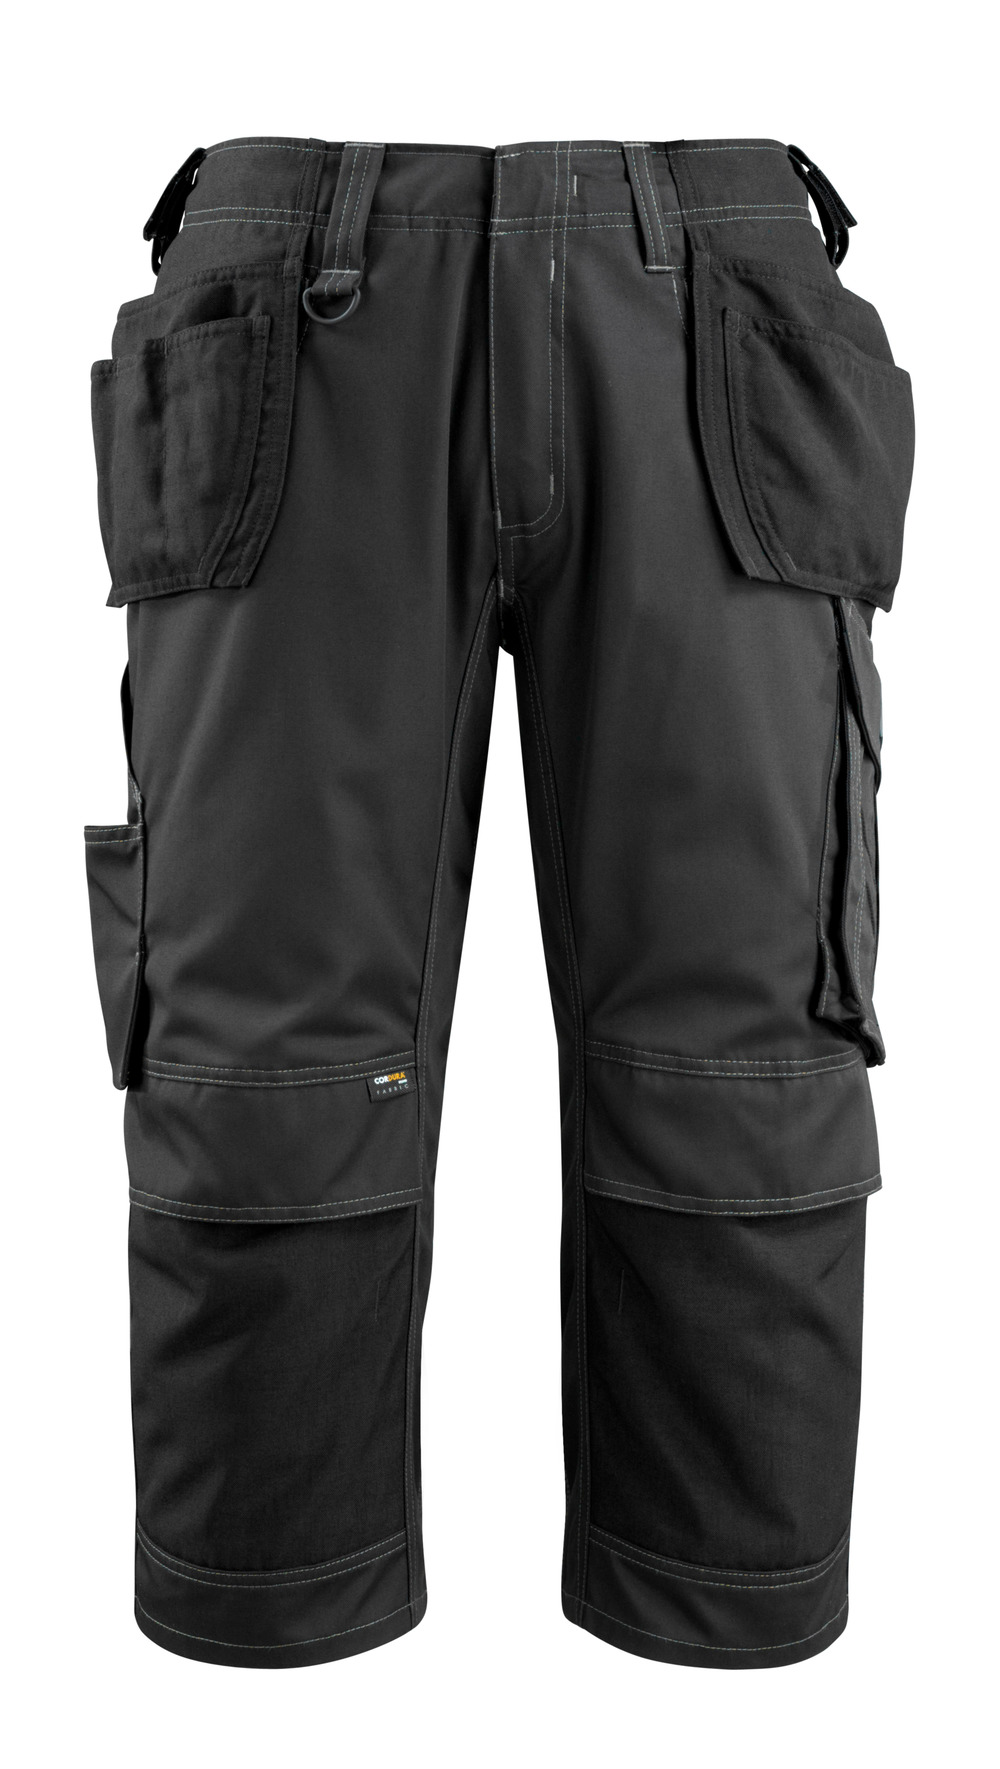 14449-442-09 ¾ Length Pants with kneepad pockets and holster pockets - black